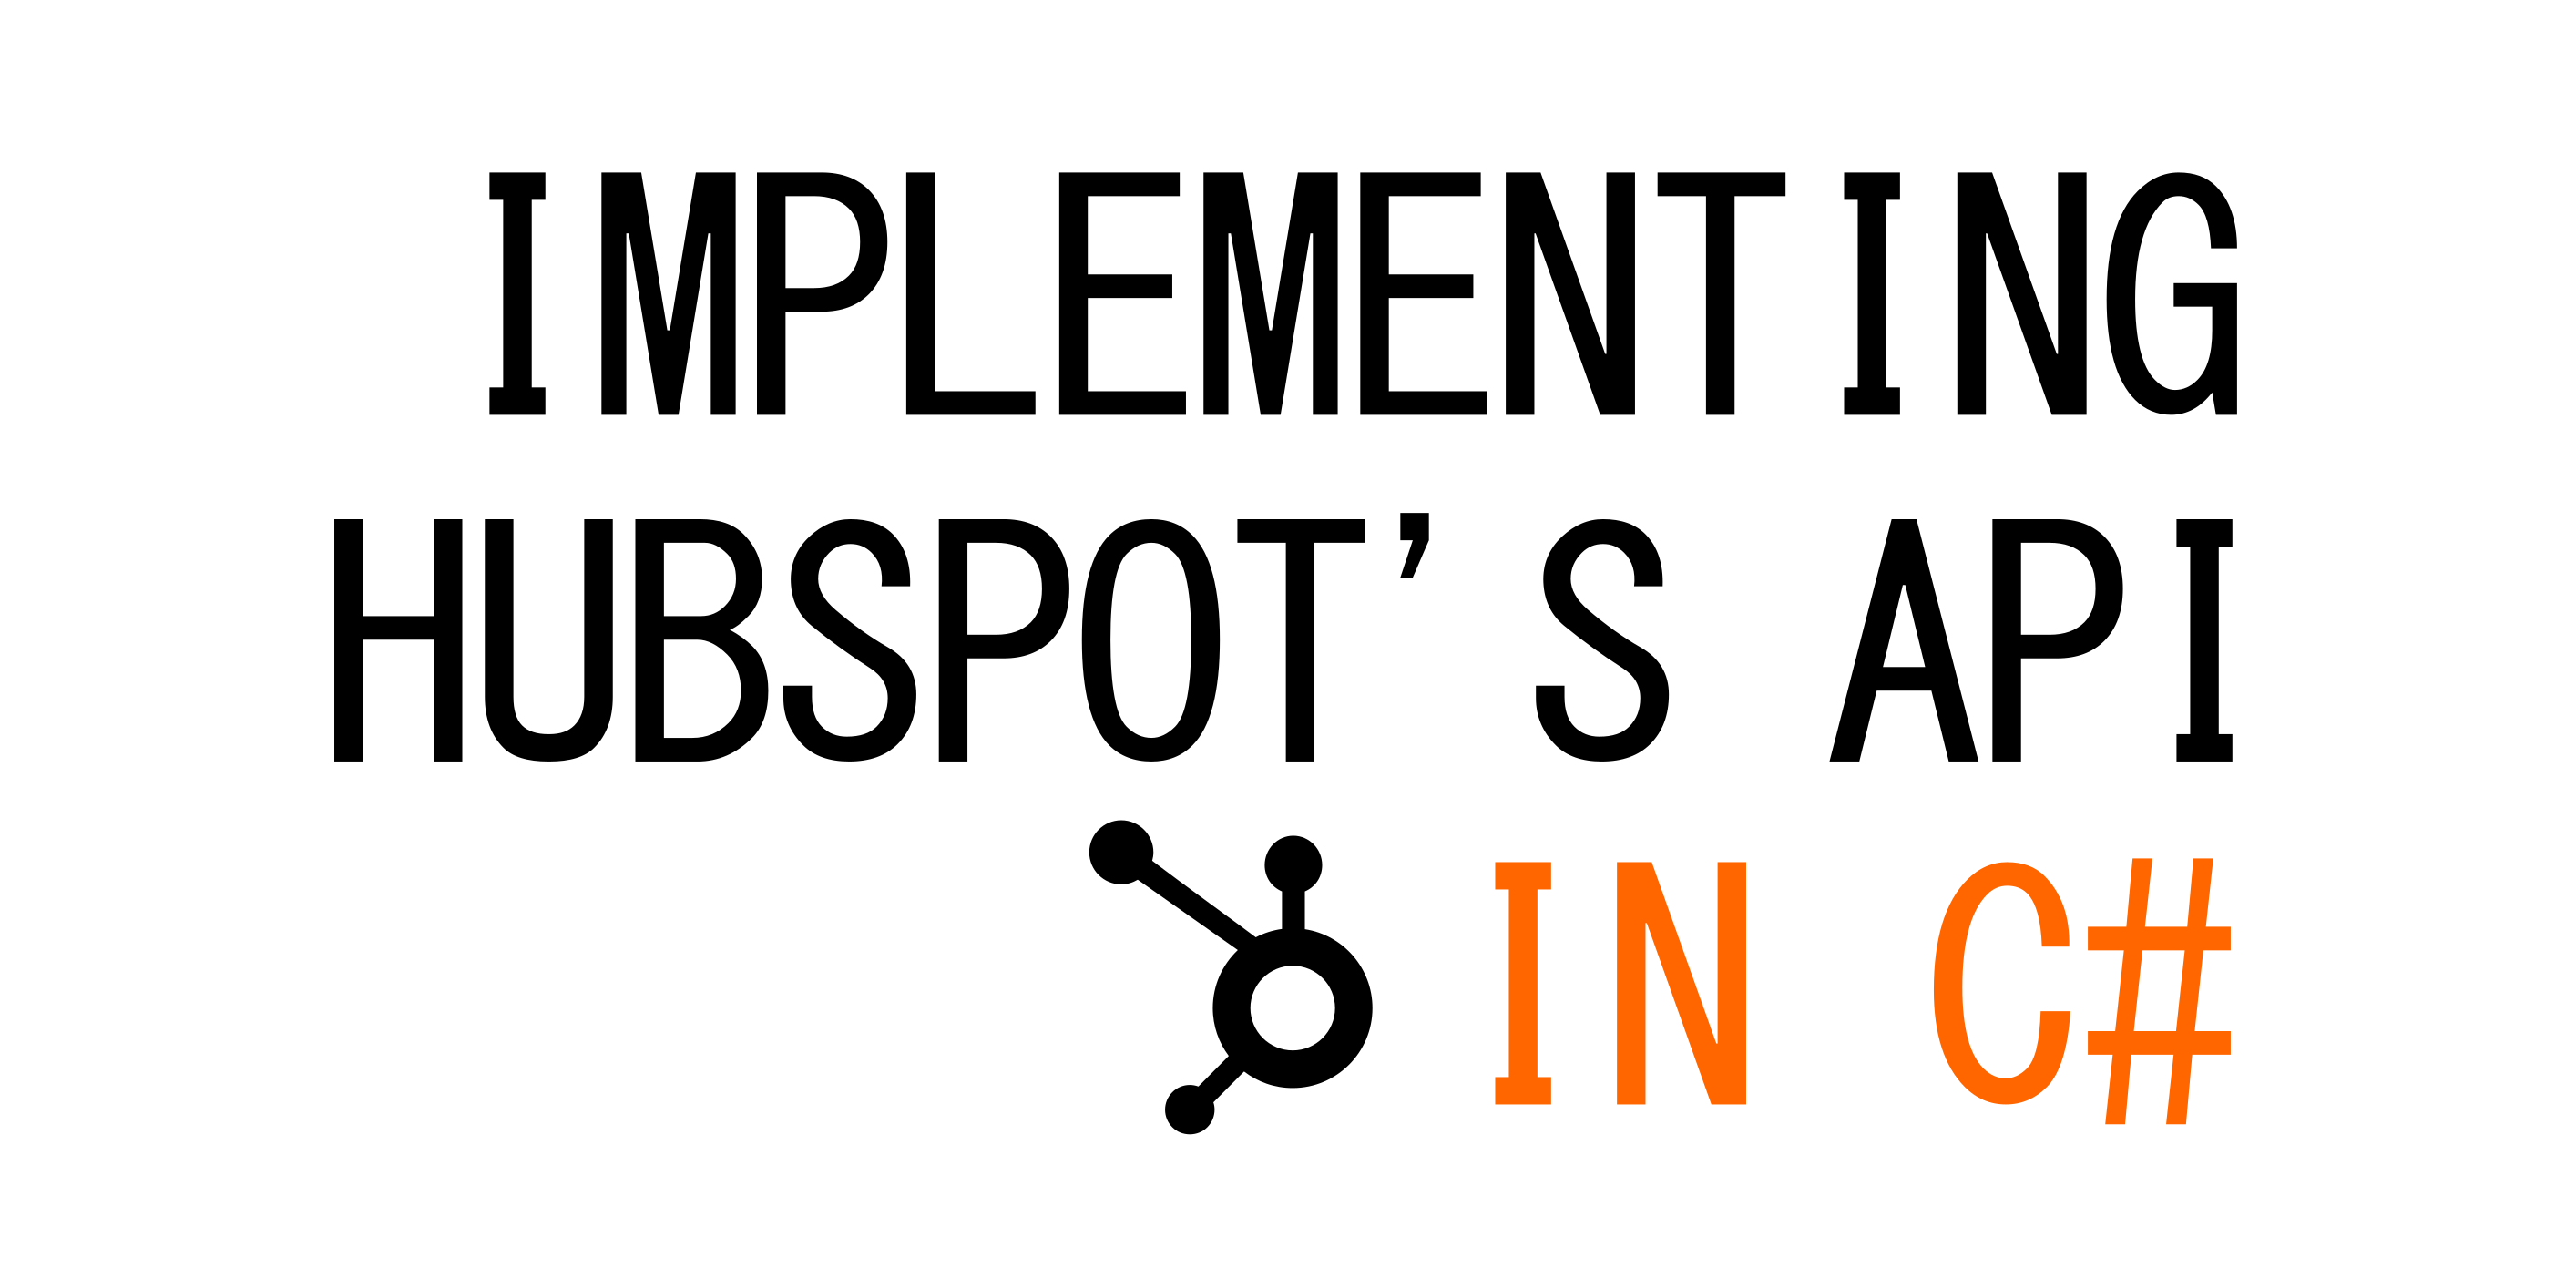 How To Get Companies From HubSpot Using C#